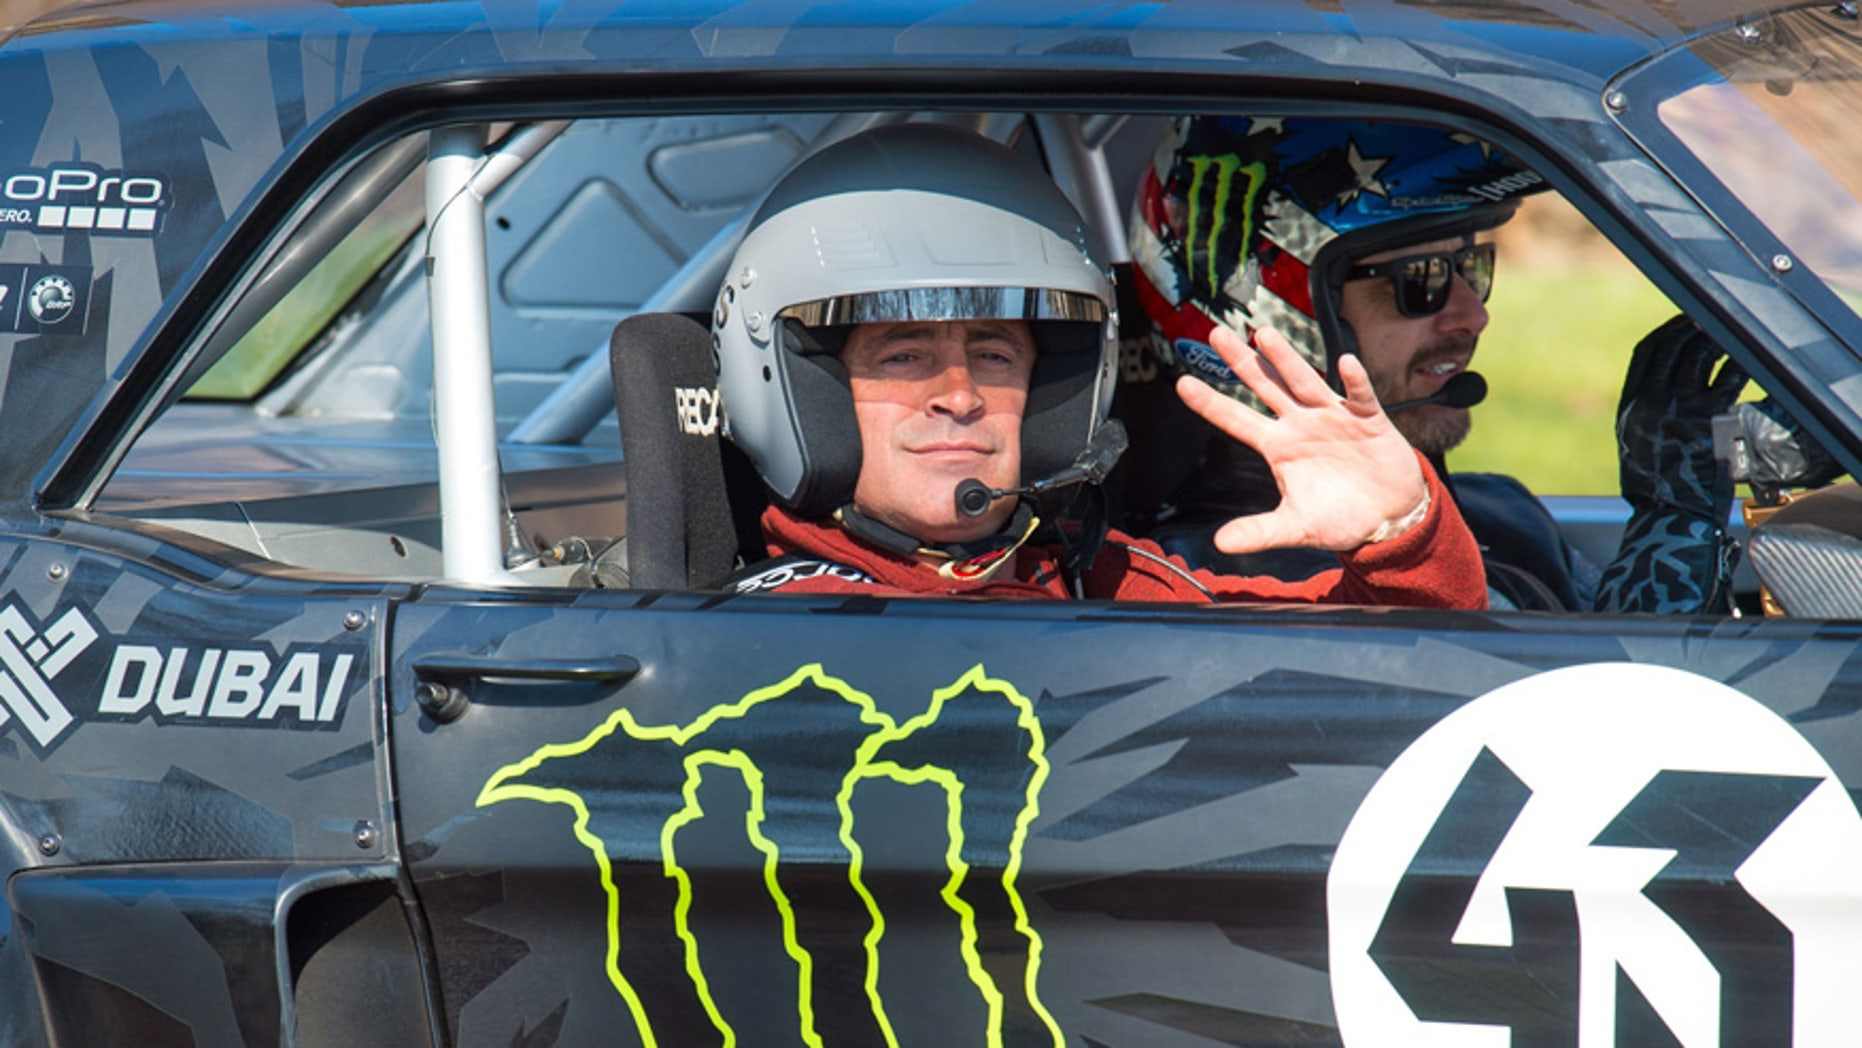 """Actor and Top Gear presenter  Matt LeBlanc, left, waves , as he sits with  rally driver Ken Block during filming of BBC Top Gear in Westminster, London on Sunday Sunday March 13, 2016 . British DJ and TV presenter of of BBC car show """"Top Gear""""  Chris Evans apologized """"unreservedly"""" on Monday March 14, 2016  for filming stunt driving near Britain's best-known war memorial on Sunday. Some bystanders complained after co-host Matt LeBlanc and a professional driver were seen performing """"doughnuts"""" in the street nearby. Col. Richard Kemp, a retired army officer, called the stunt """"gravely disrespectful."""" ( Dominic Lipinski/PA via AP) UNITED KINGDOM OUT  NO SALES NO ARCHIVE"""